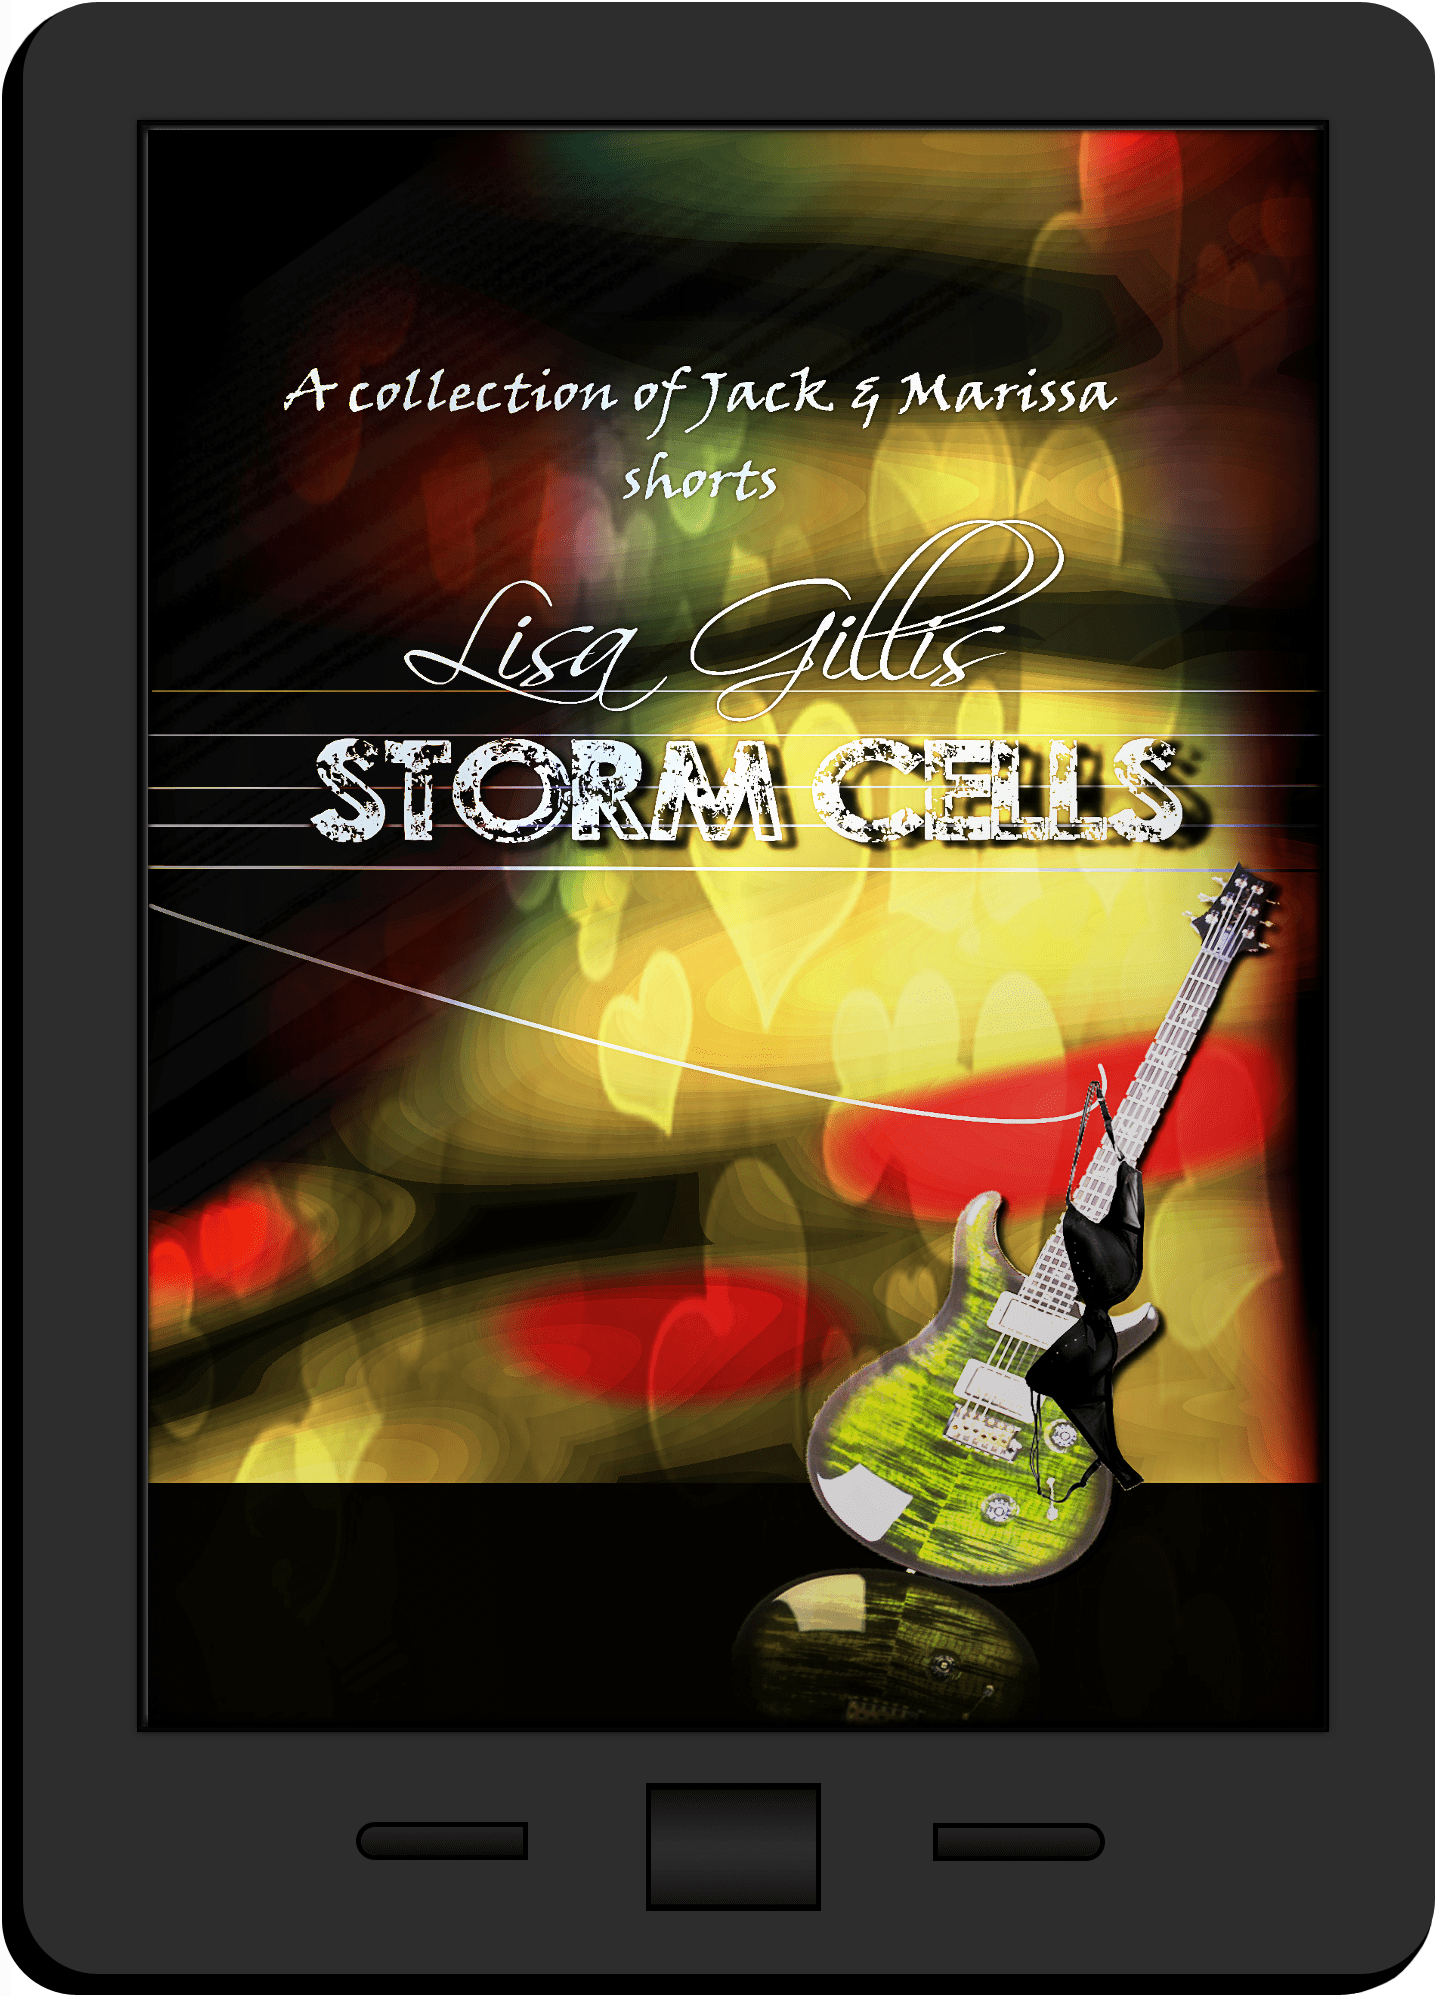 storm-cells-2-rock-romance-cover